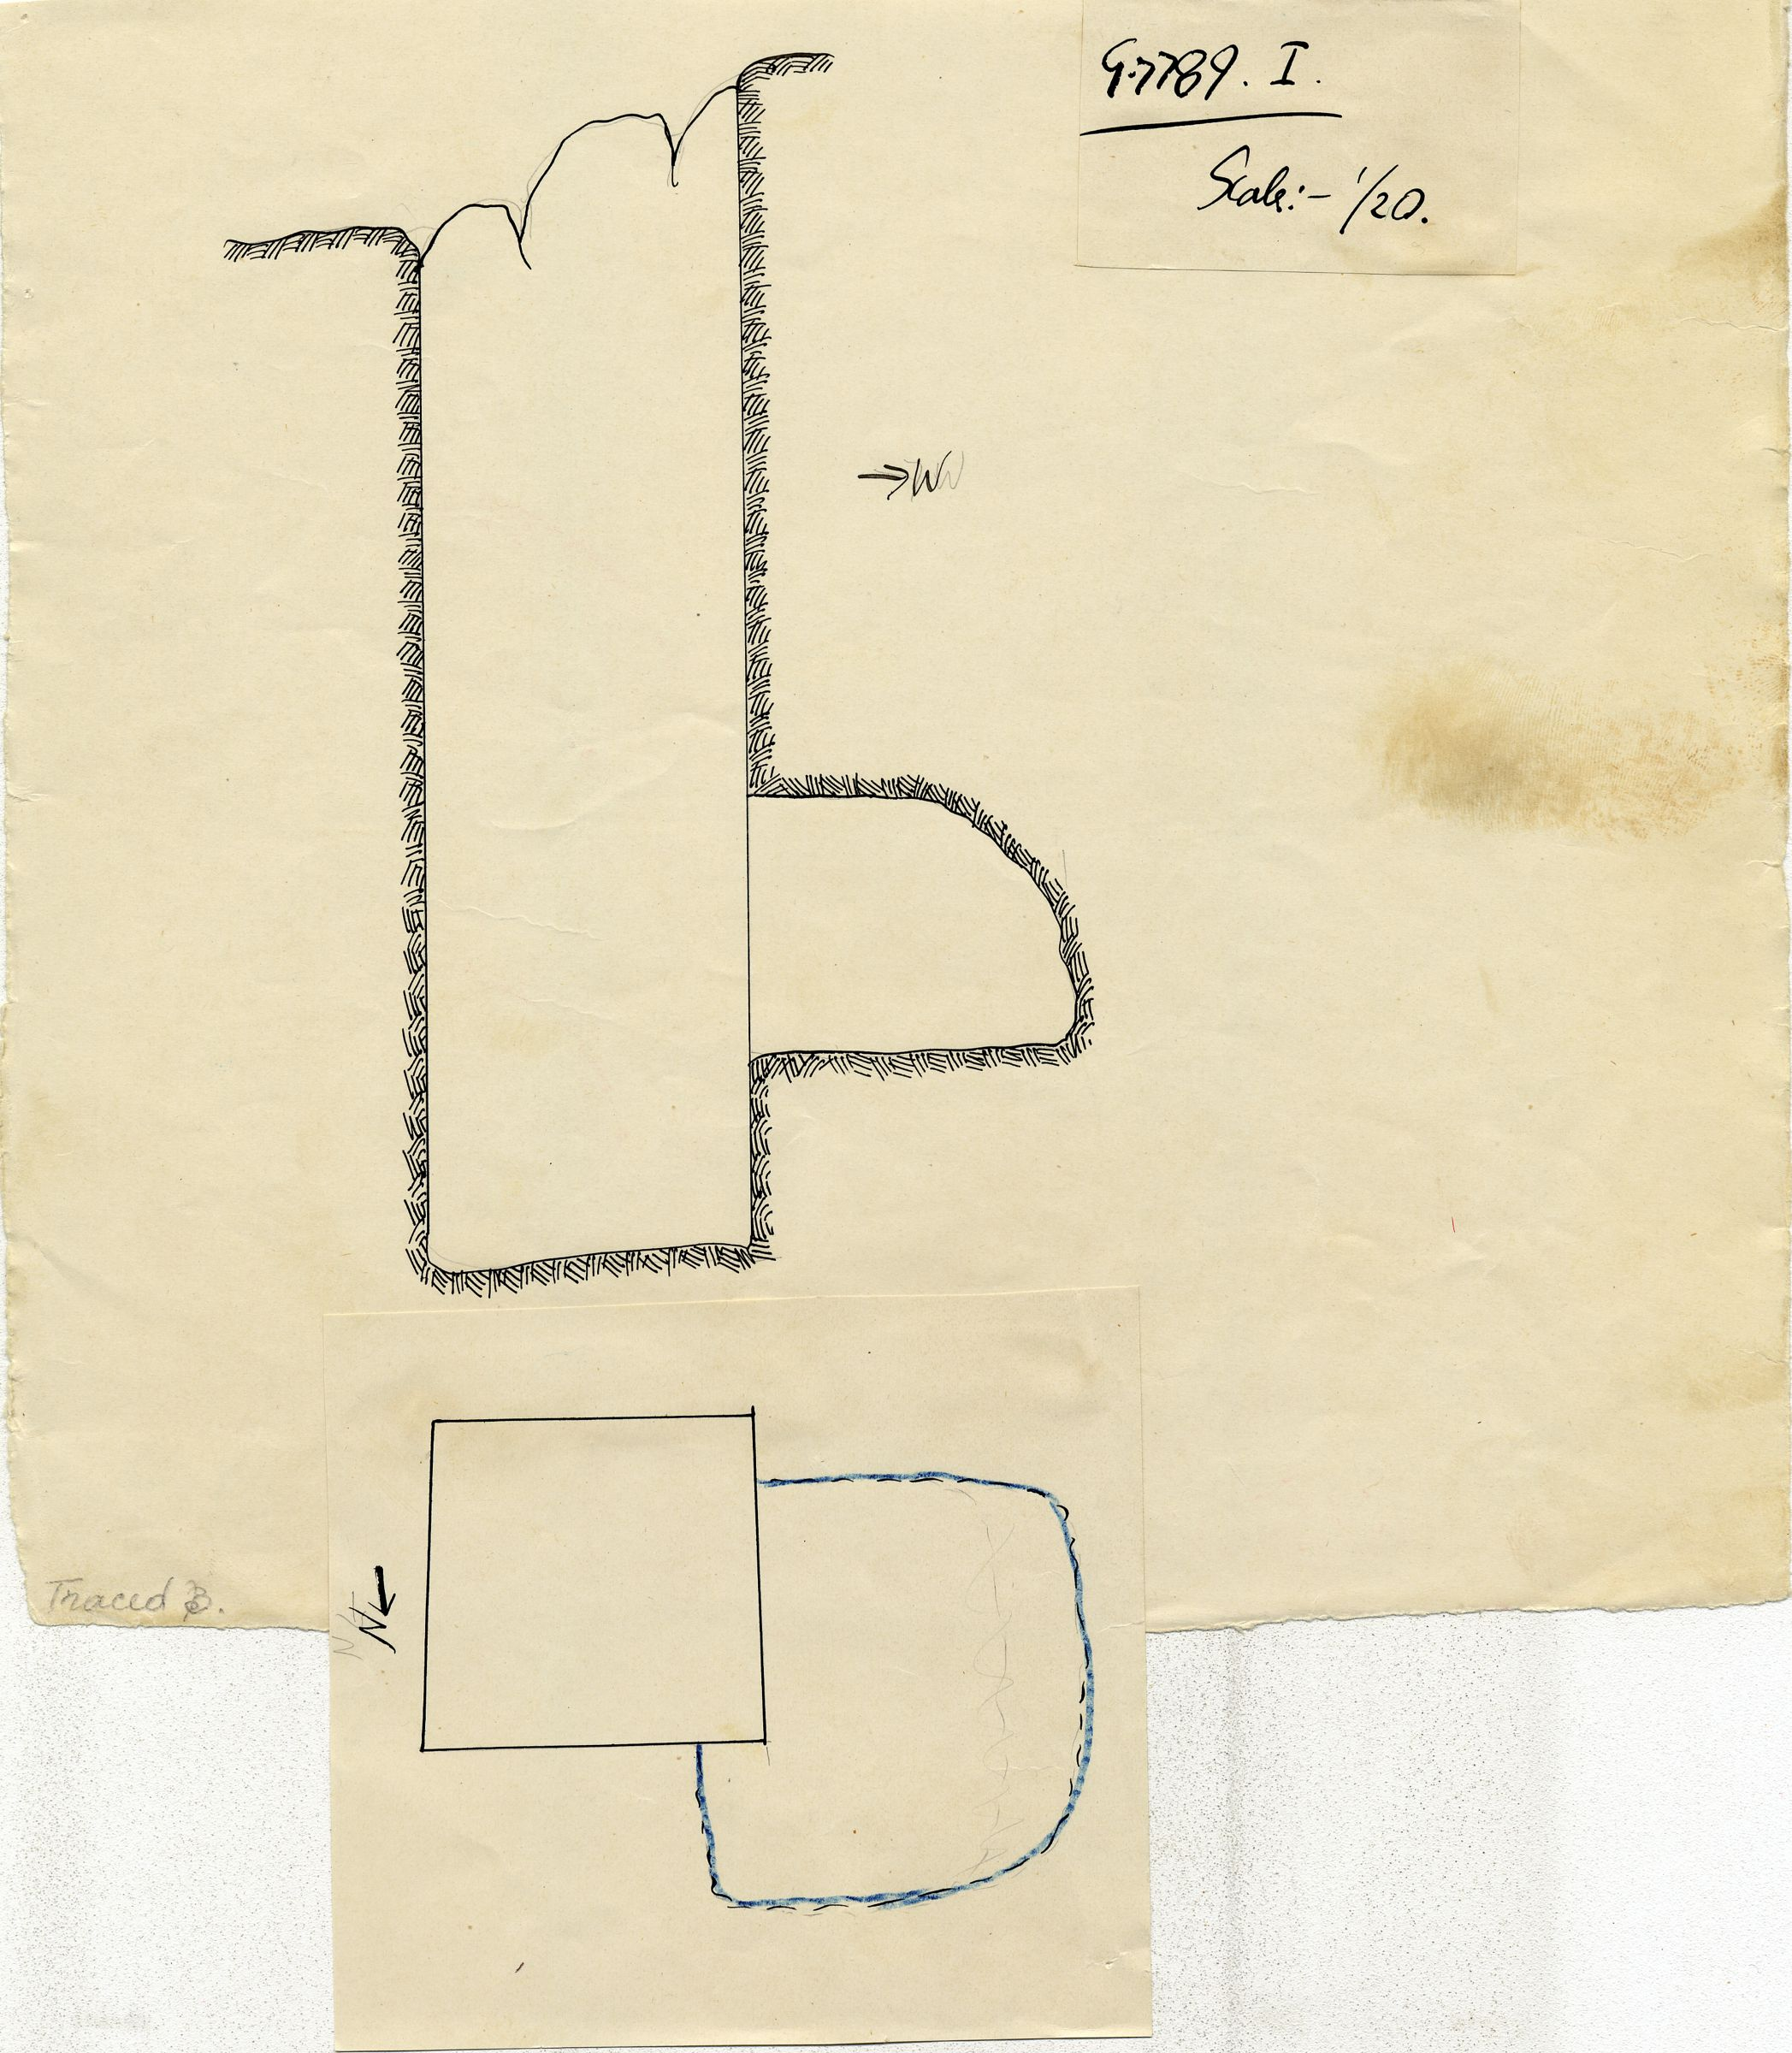 Maps and plans: G 7789, Shaft I